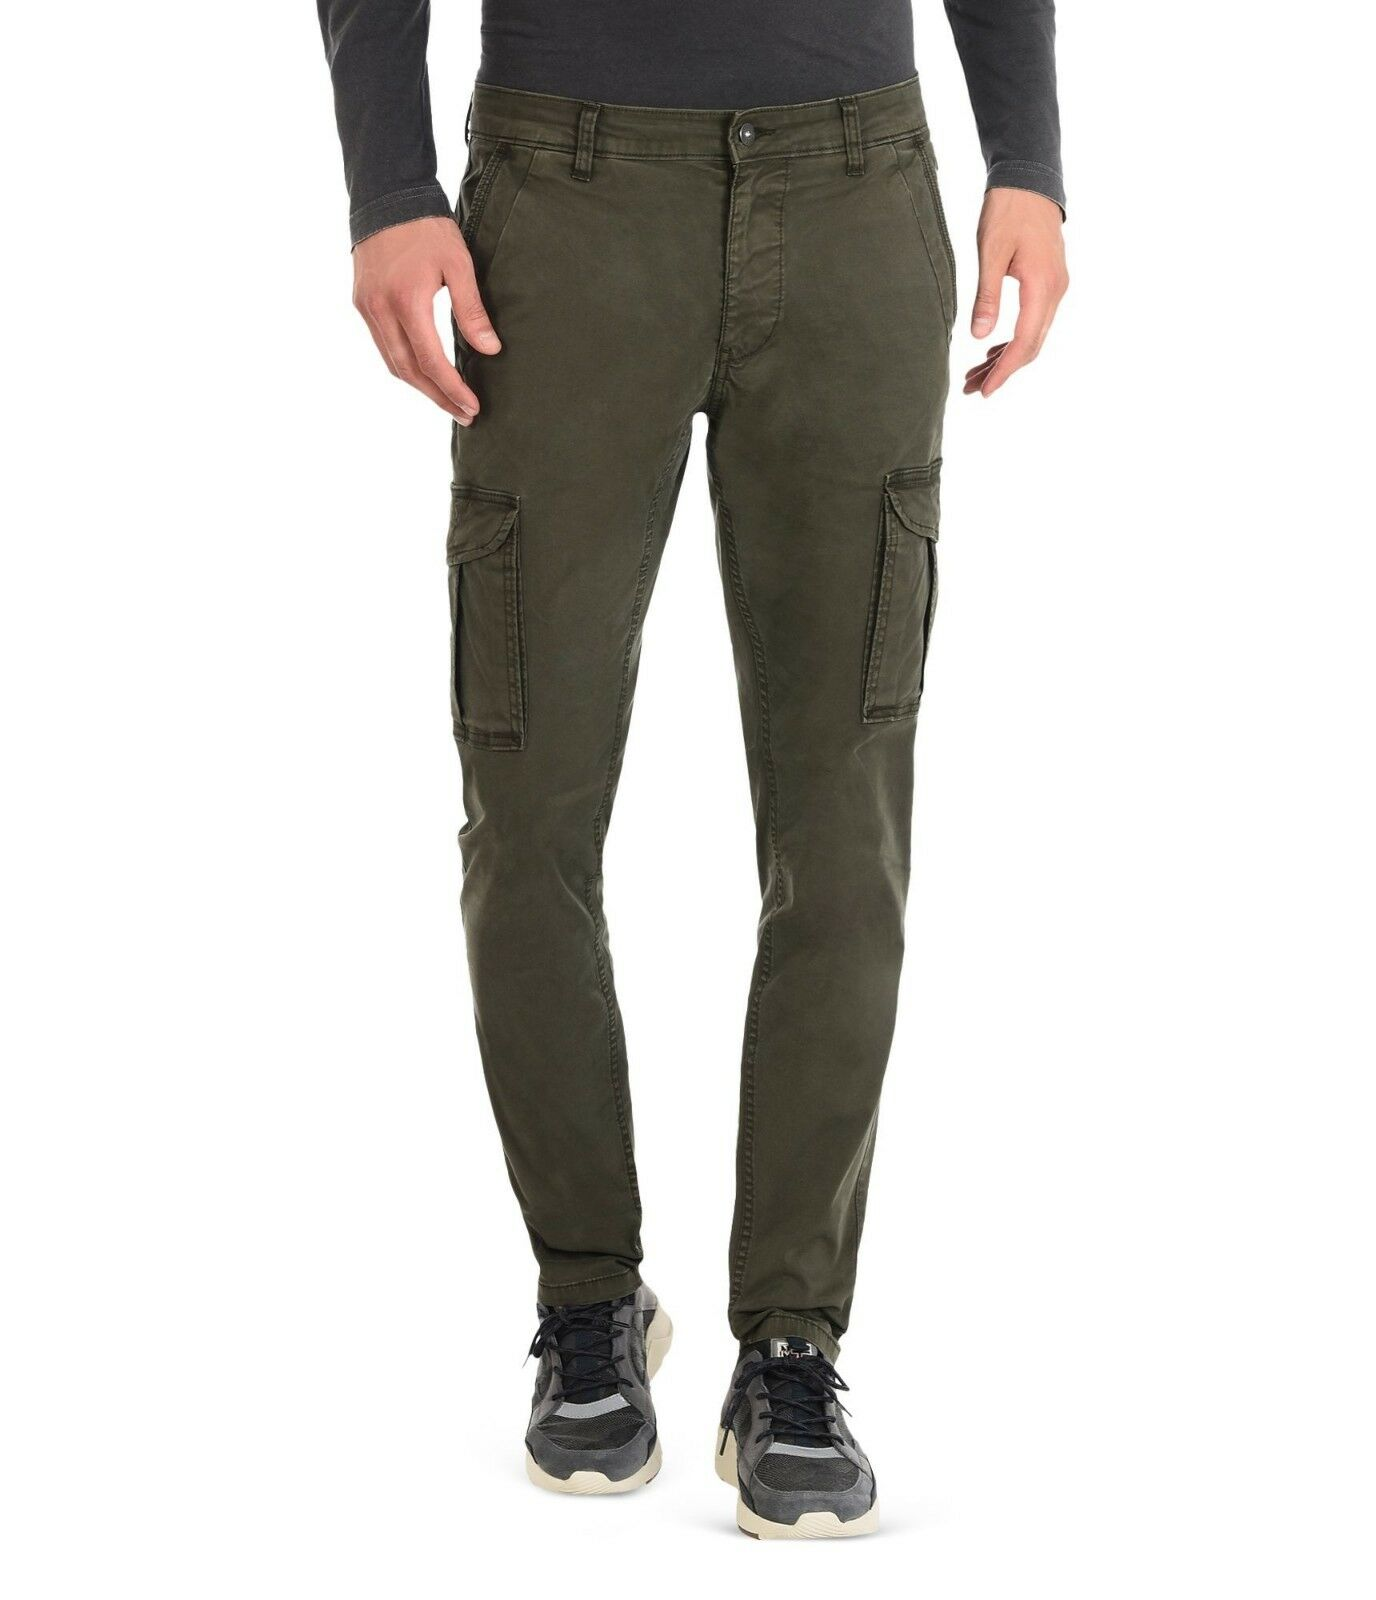 SCONTO 20% NAPAPIJRI PANTALONI CARGO MOTO STRETCH WINTER N0YGSA TASCONI TROUSERS